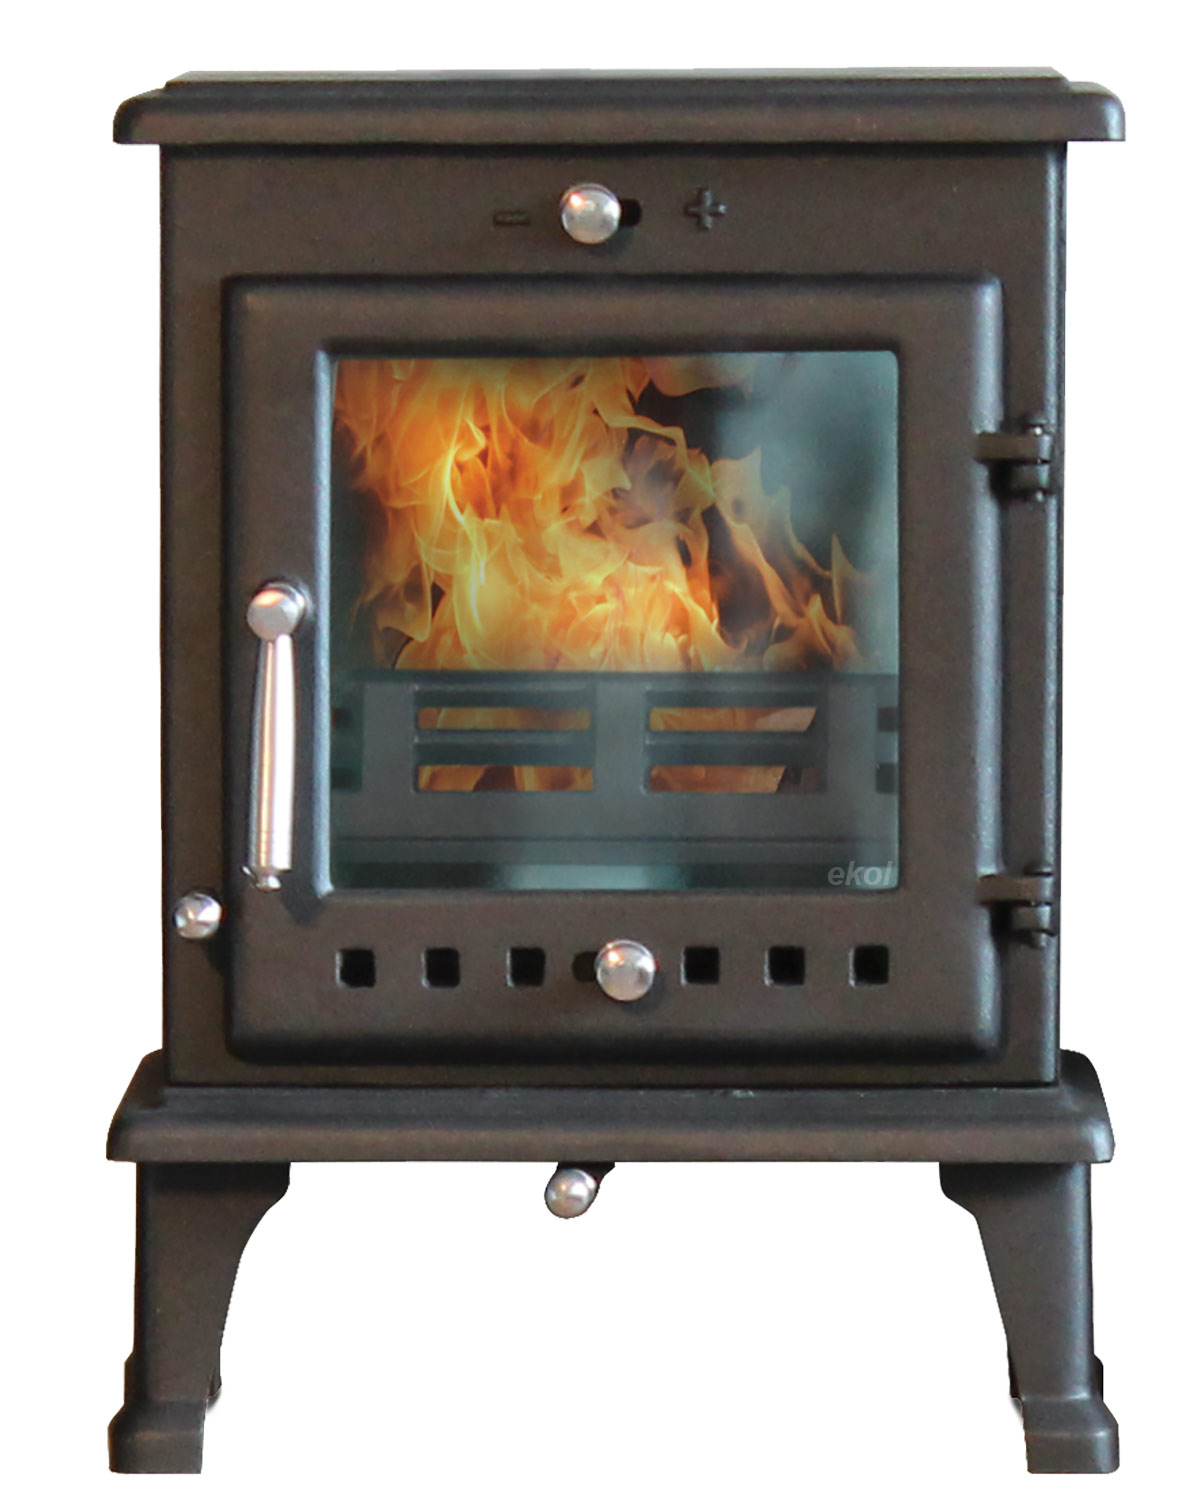 Ekol Crystal 5 Wood Burning Stove